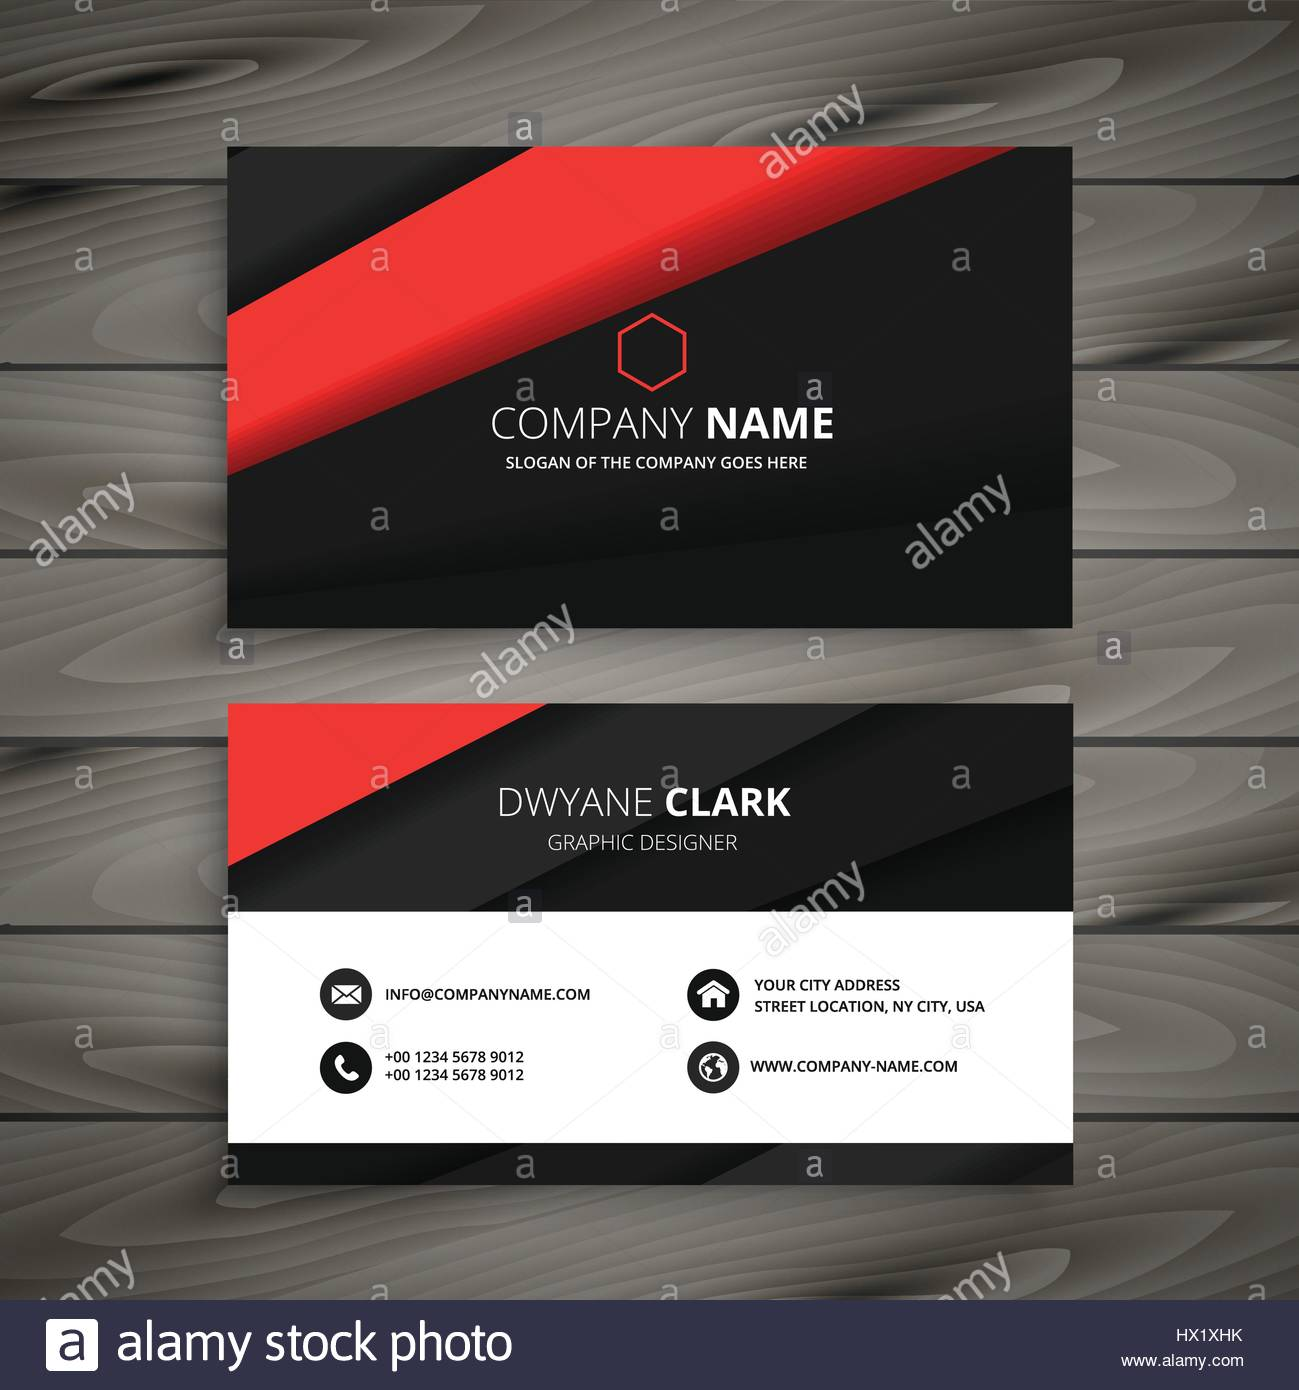 Minimal red black business card template vector design illustration minimal red black business card template vector design illustration reheart Images